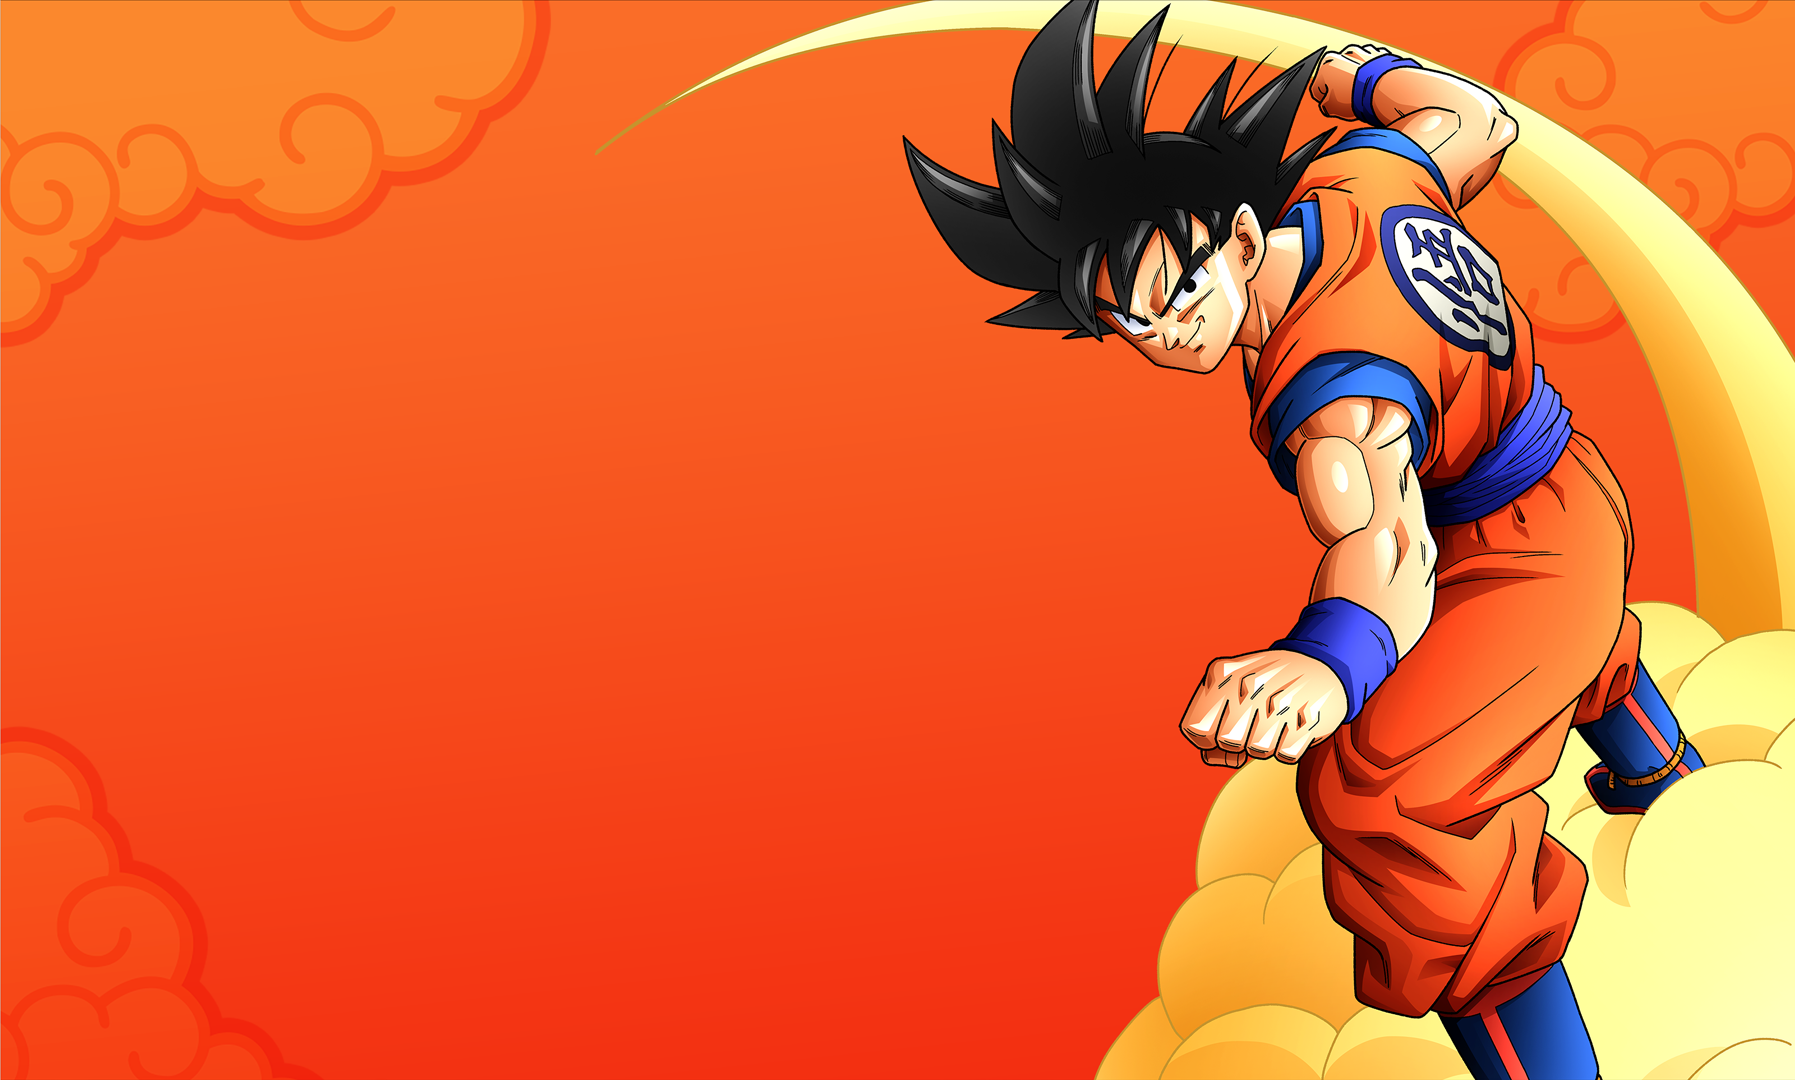 Dragon Ball Super Chapter 64 Read Online, Spoilers, Full Summary, Draft  Leaks and Raw Scans - The Geek Herald